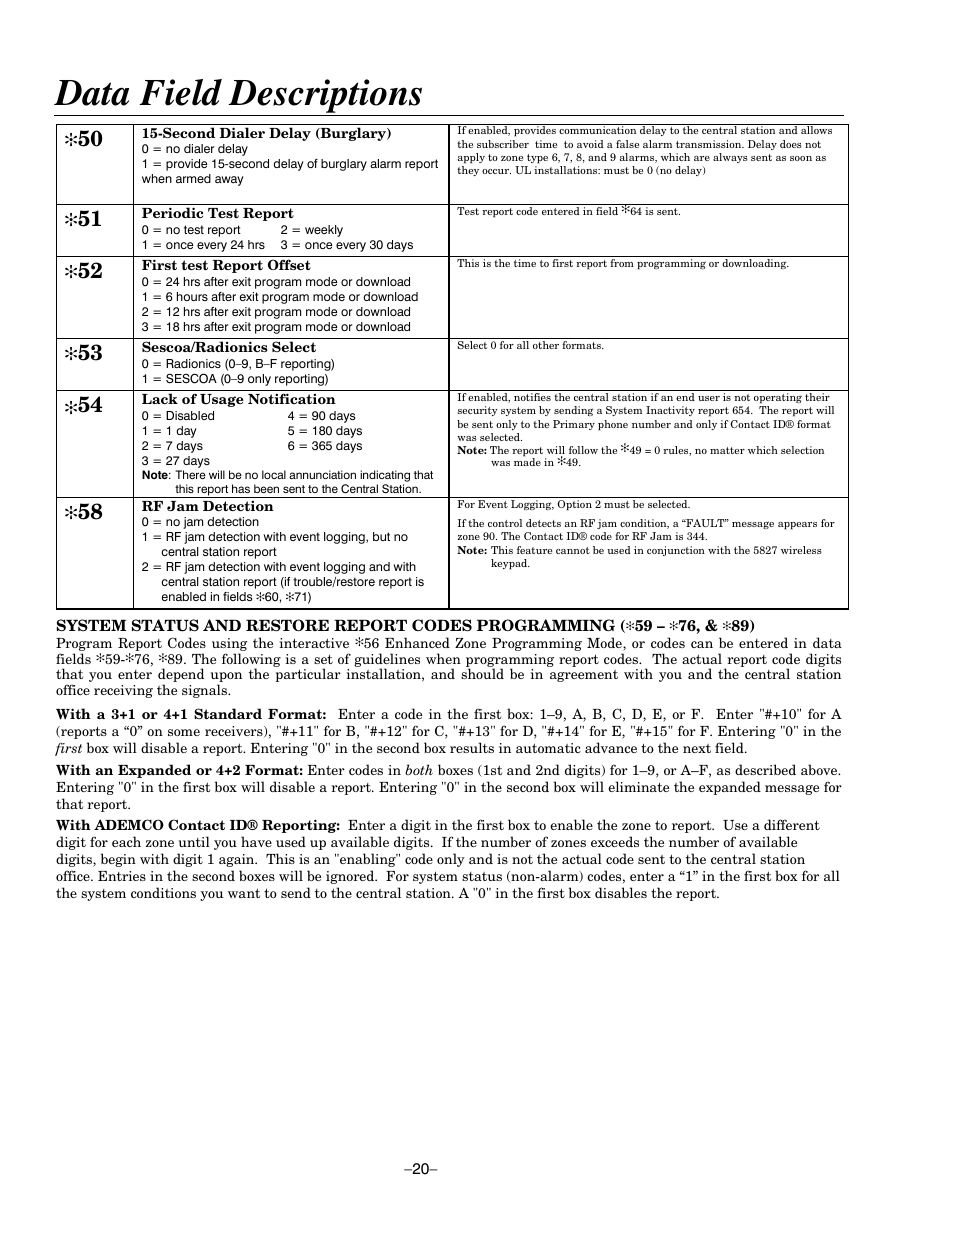 Data field descriptions | Honeywell ADEMCO LYNXR-EN User Manual | Page 20 /  72